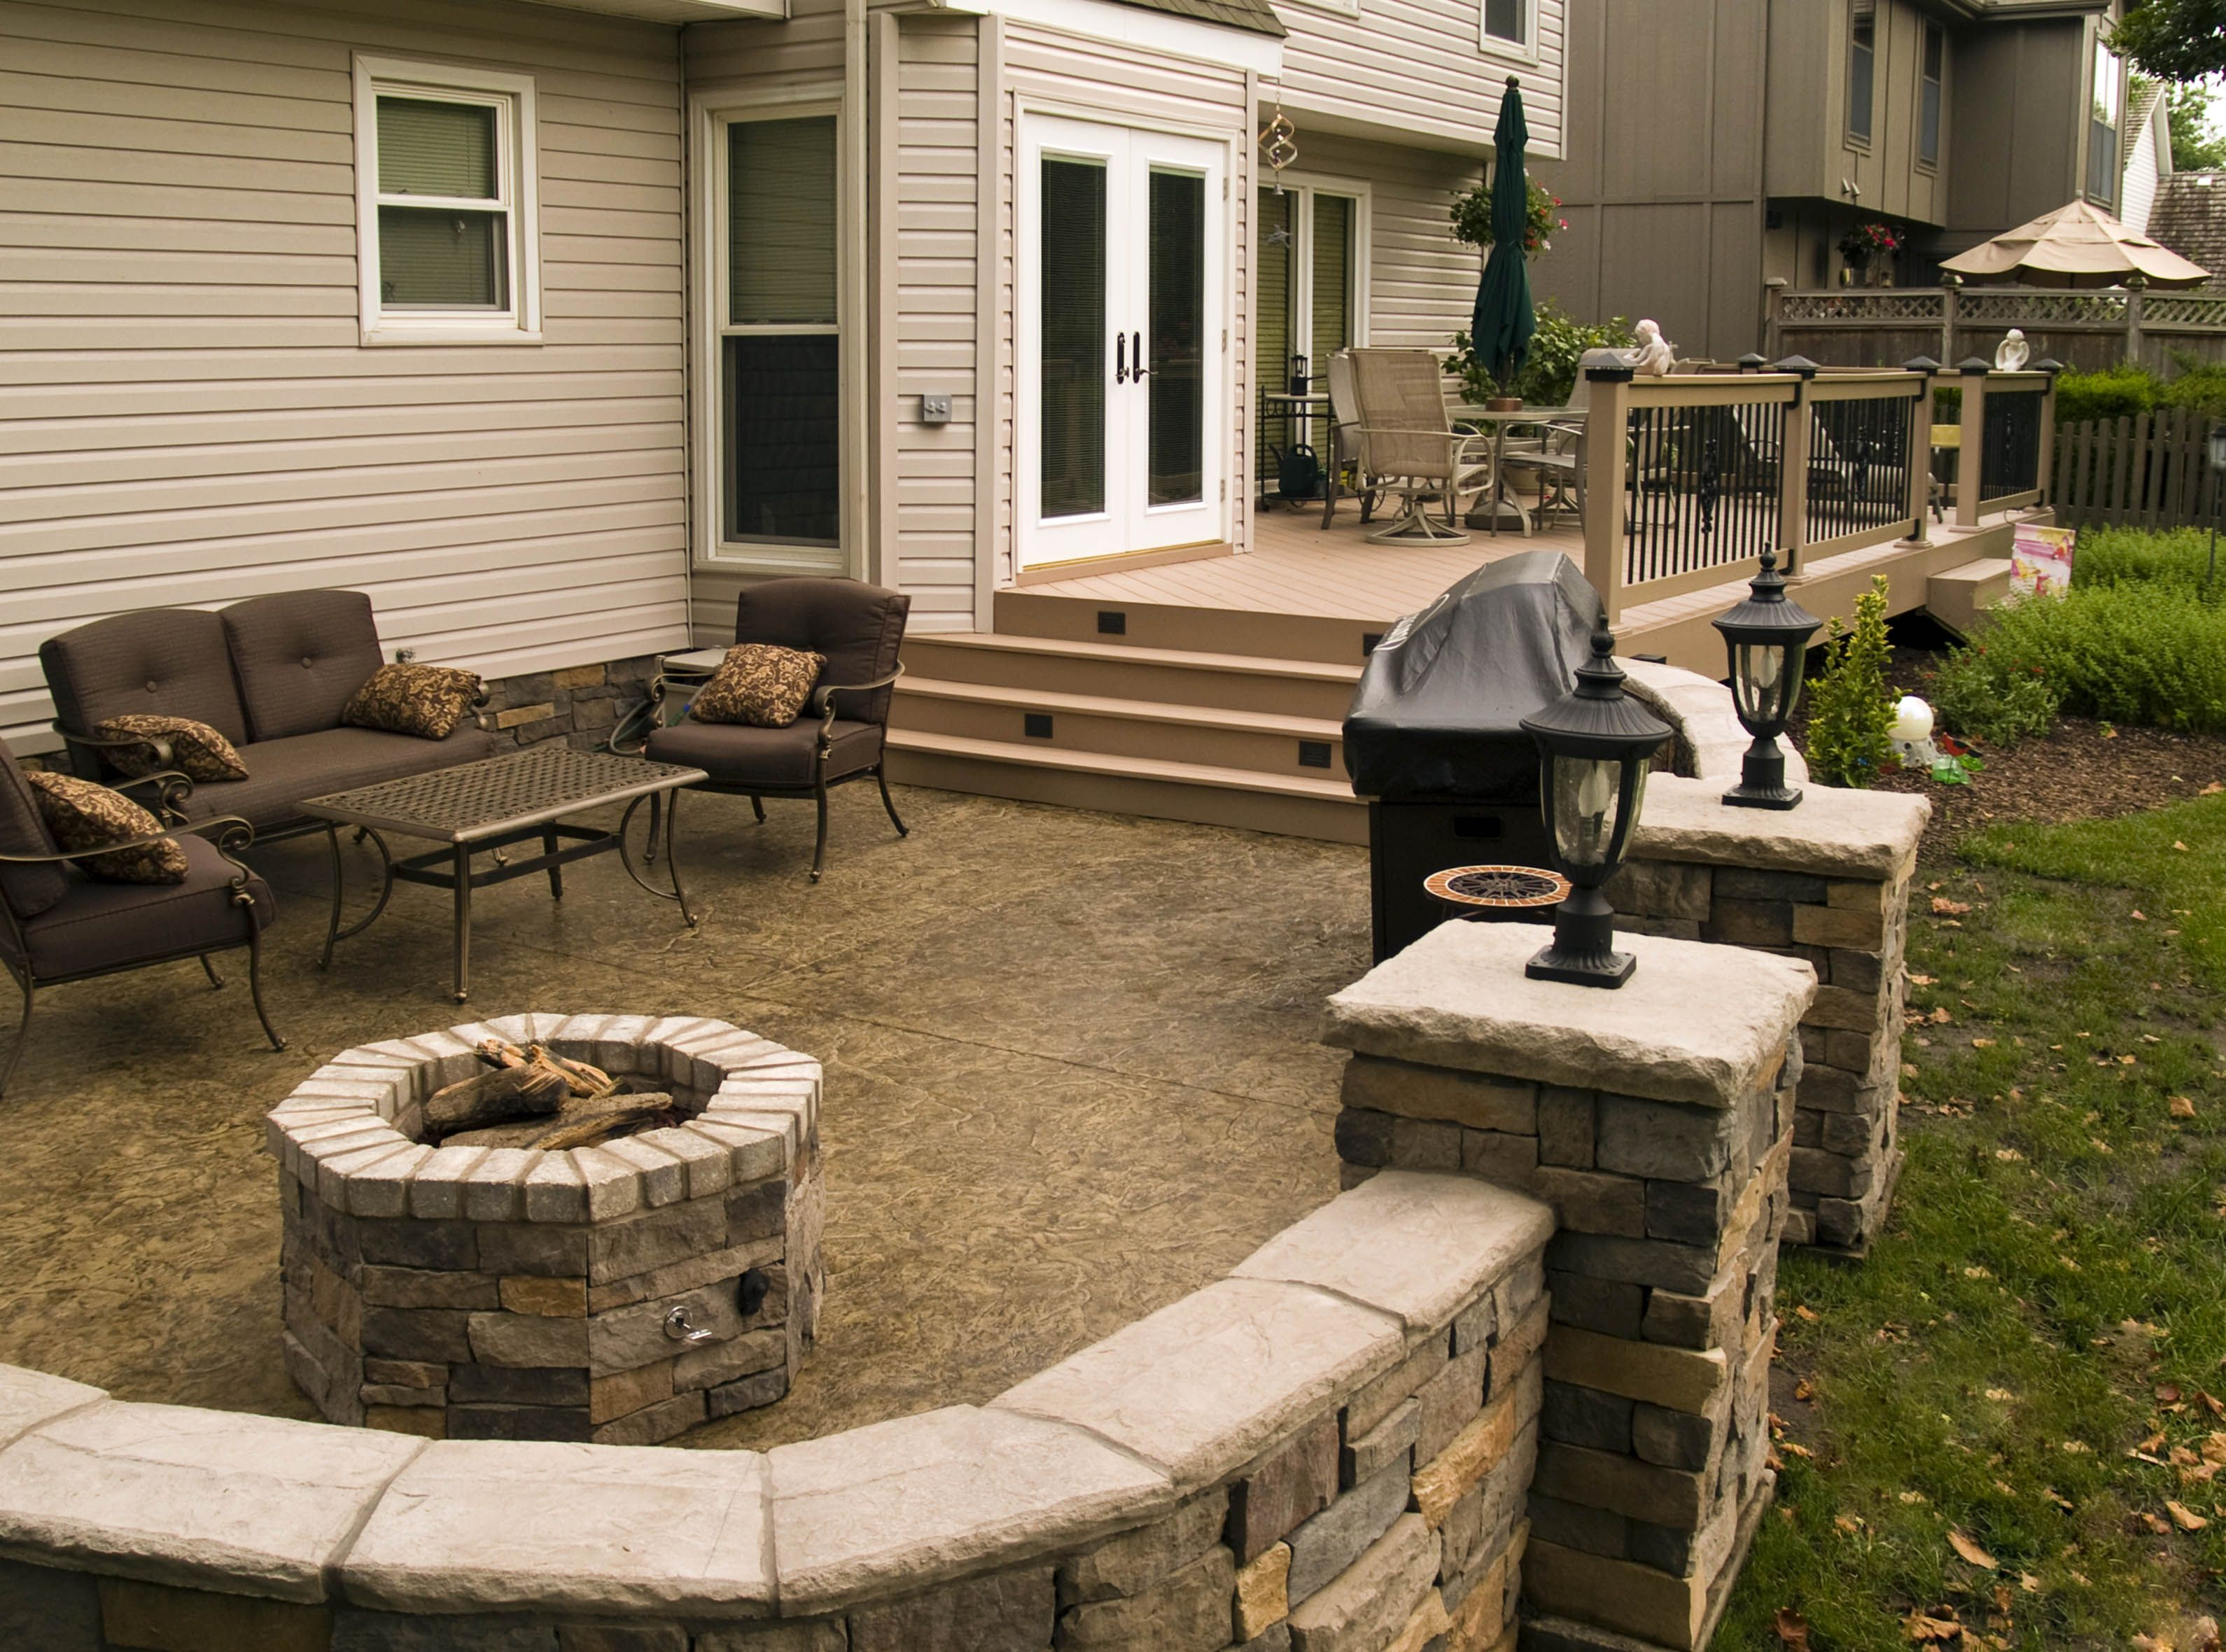 Azek Deck Stamped Patio Stone Walls Lighting and Fire Pit in